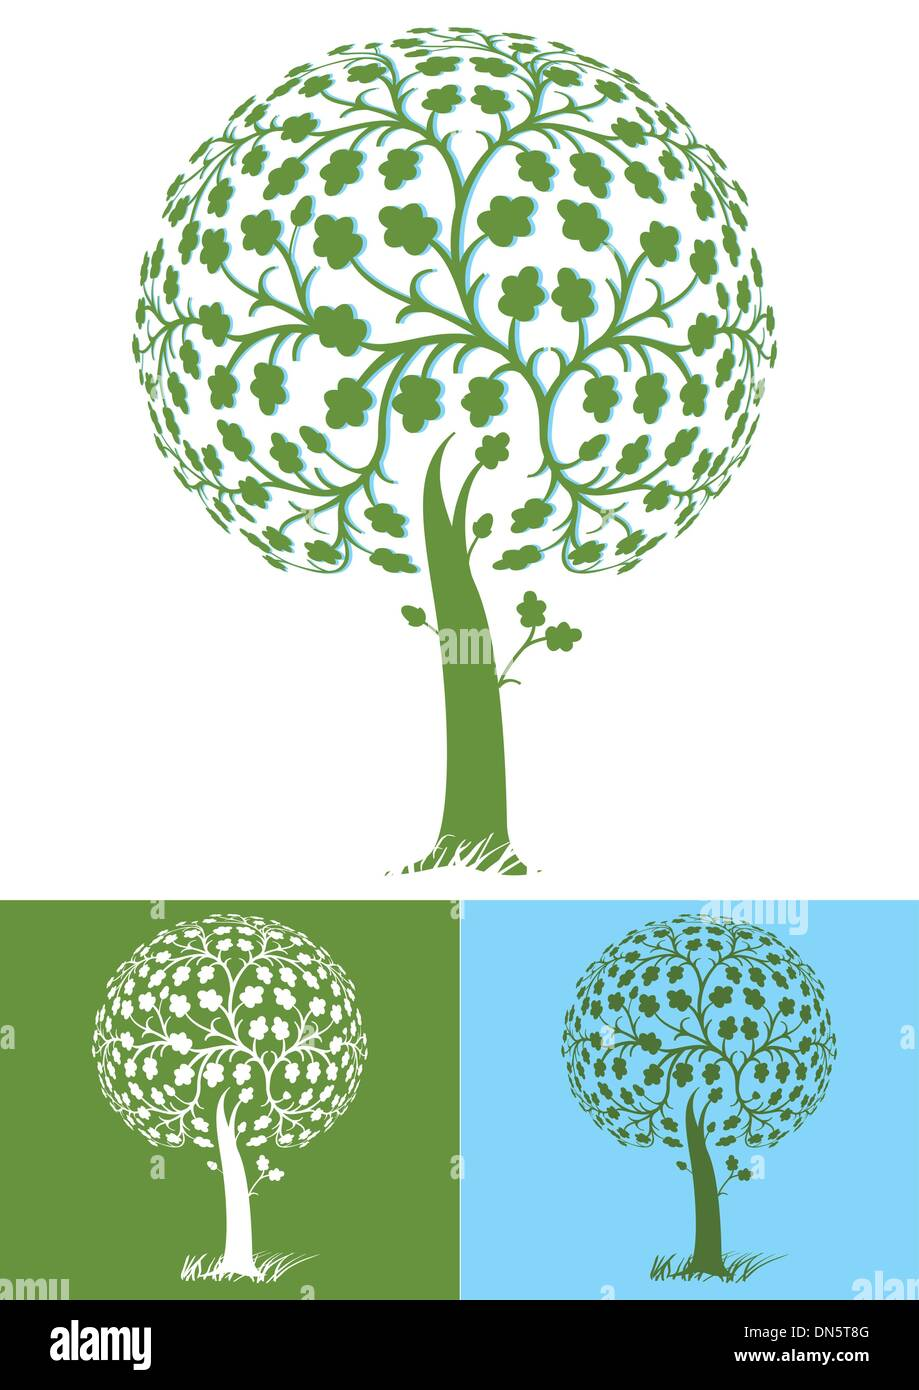 stylized tree - Stock Image